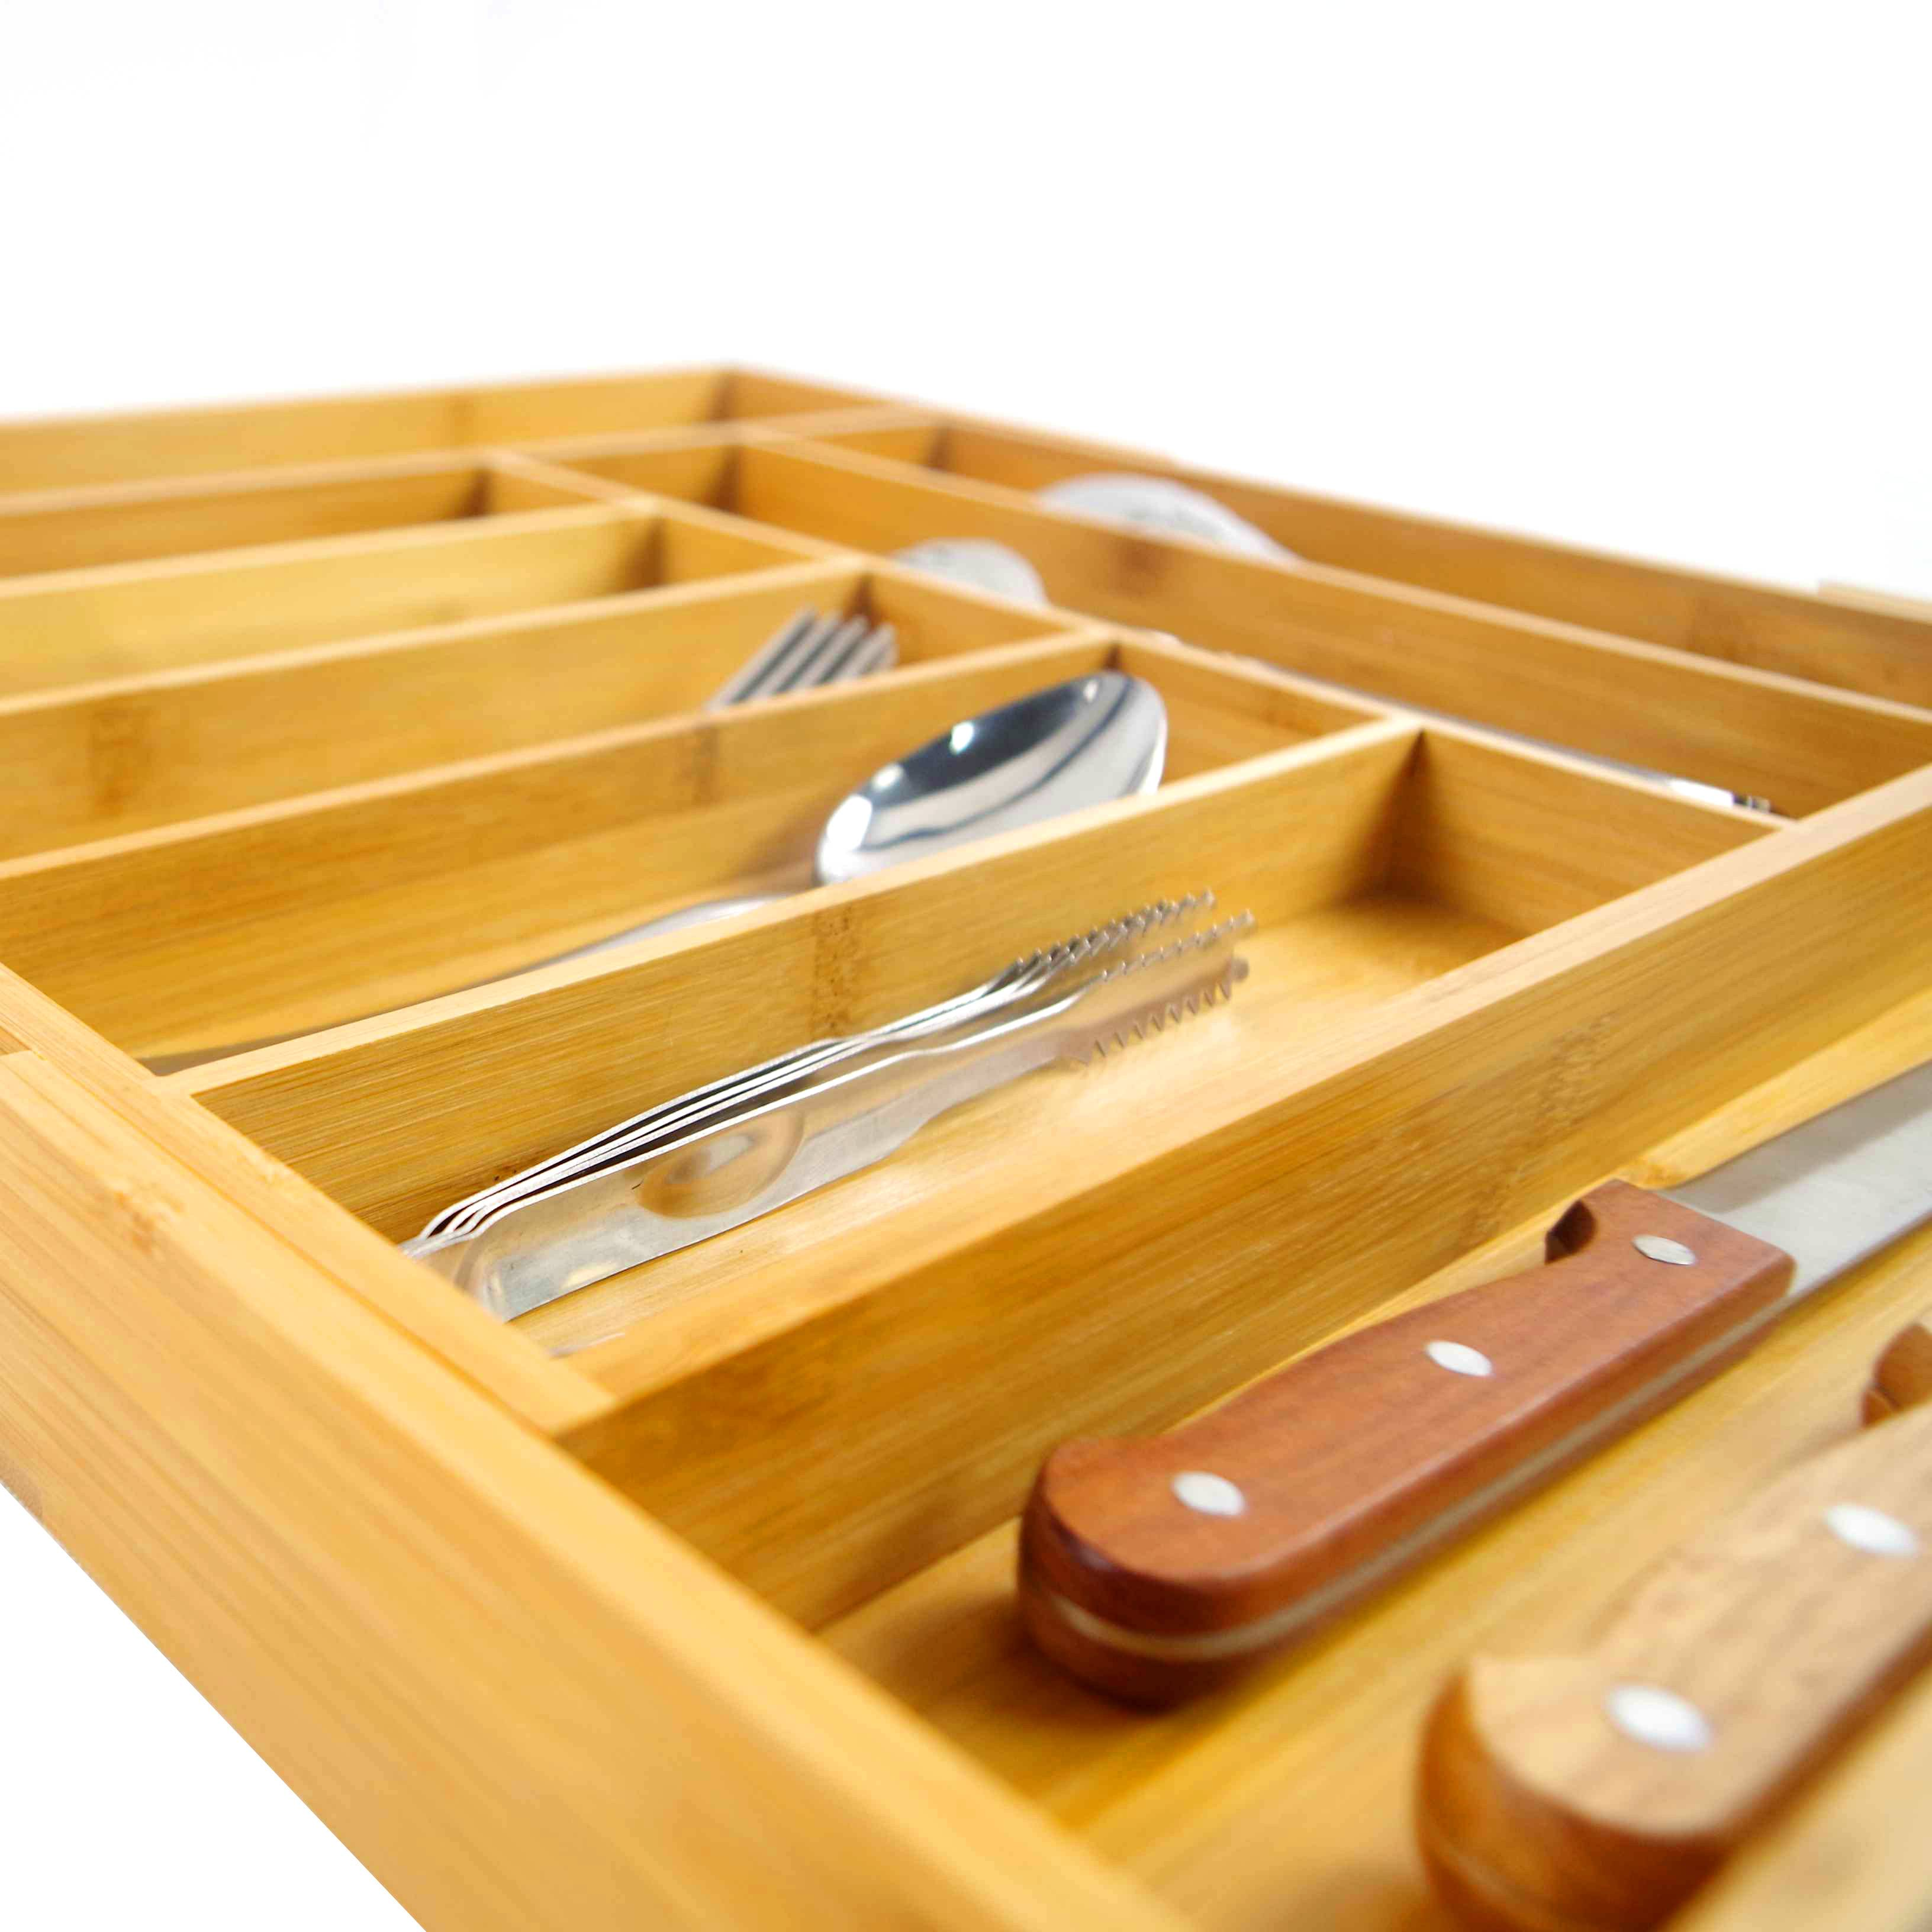 Wholesale Price Wood Cutlery Tray - Free sample for China Cheap Price Bamboo Kitchen Drawer Organizer with 7-9 Compartments, Deep Silverware Organizer, Utensil Organizer, Silverware Tray – Bridge Style